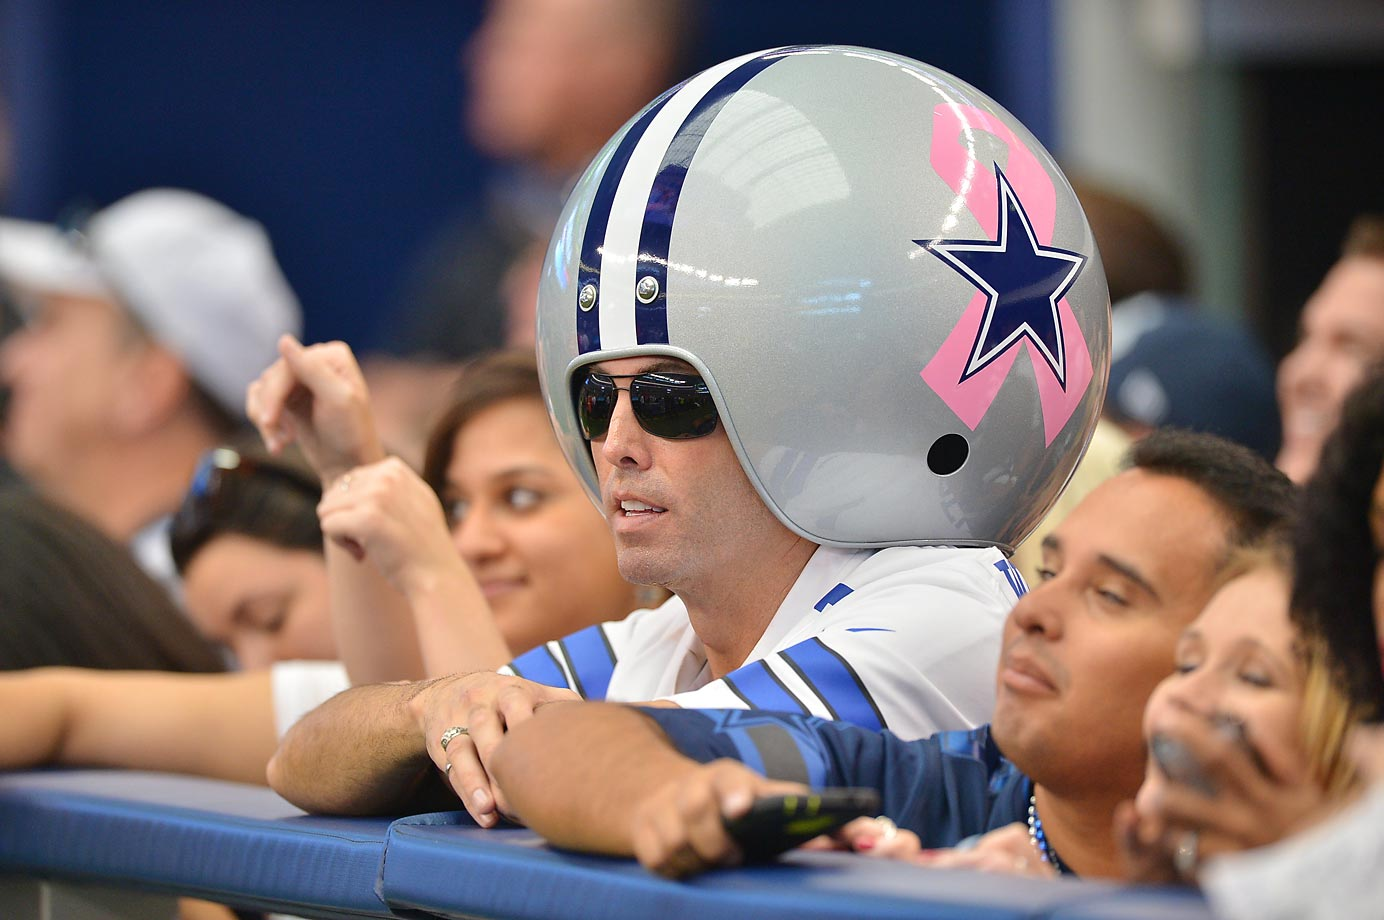 Dallas Cowboys fans during their game against the Houston Texans.